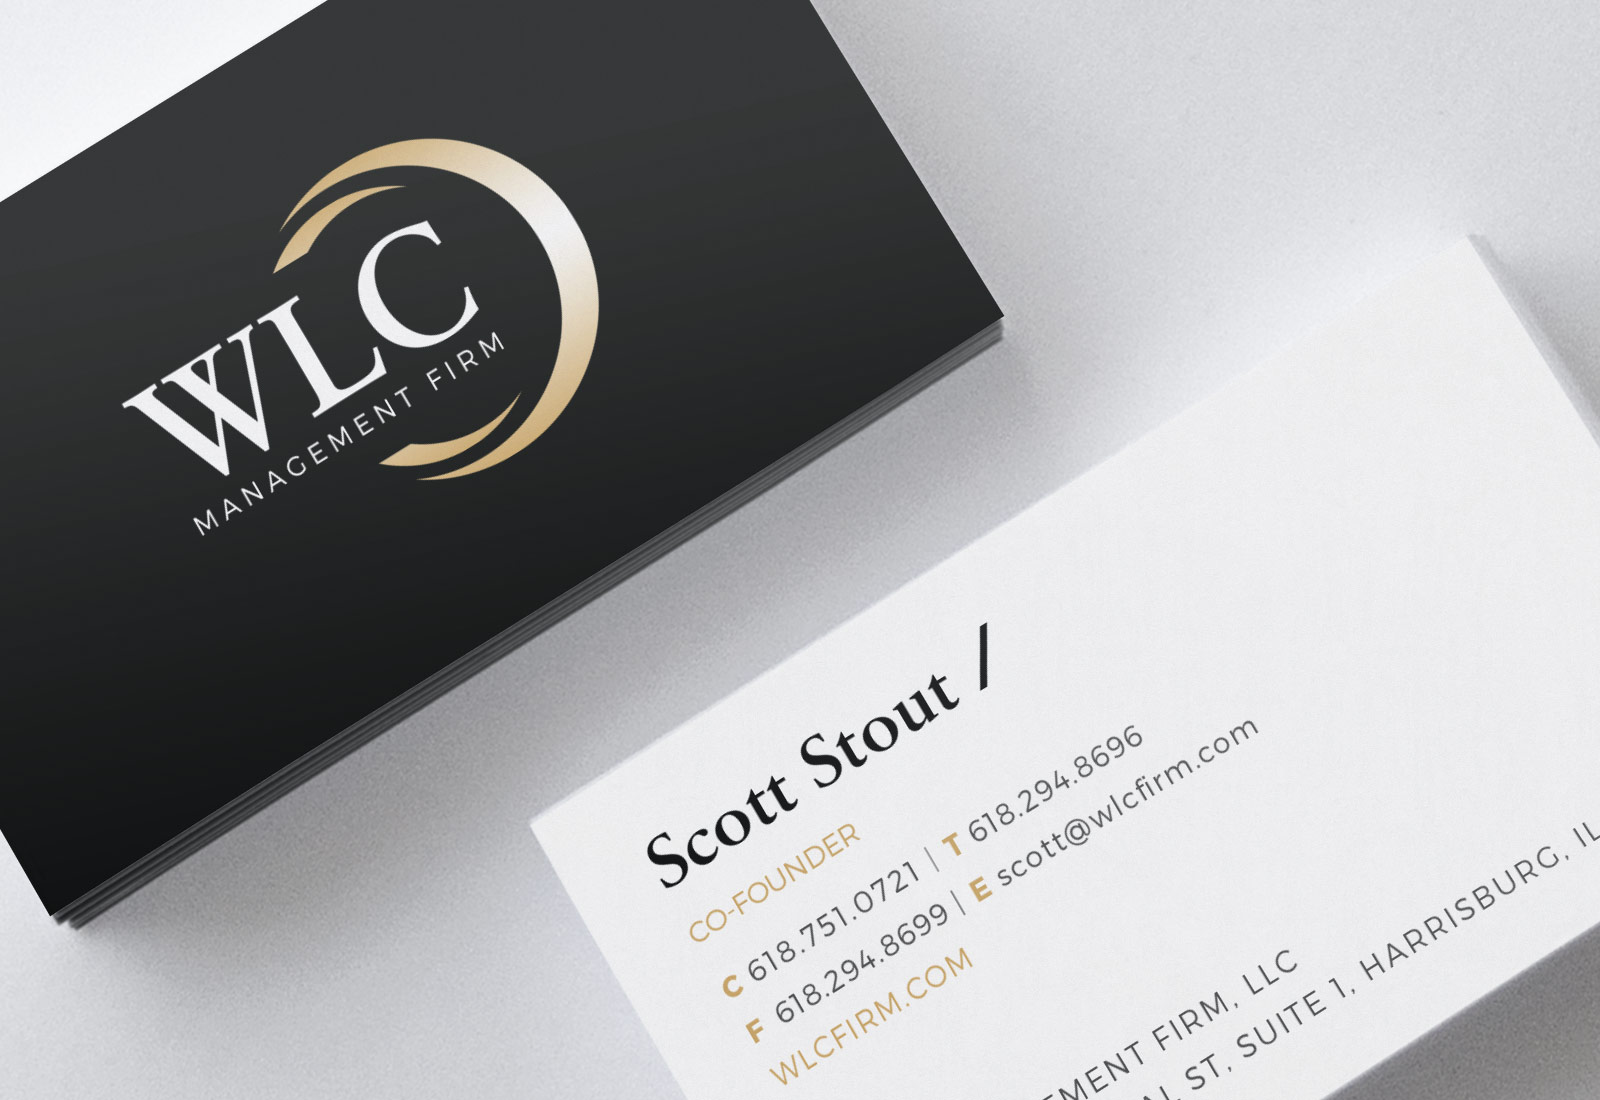 WLC Management Firm Business Card Design & Layout